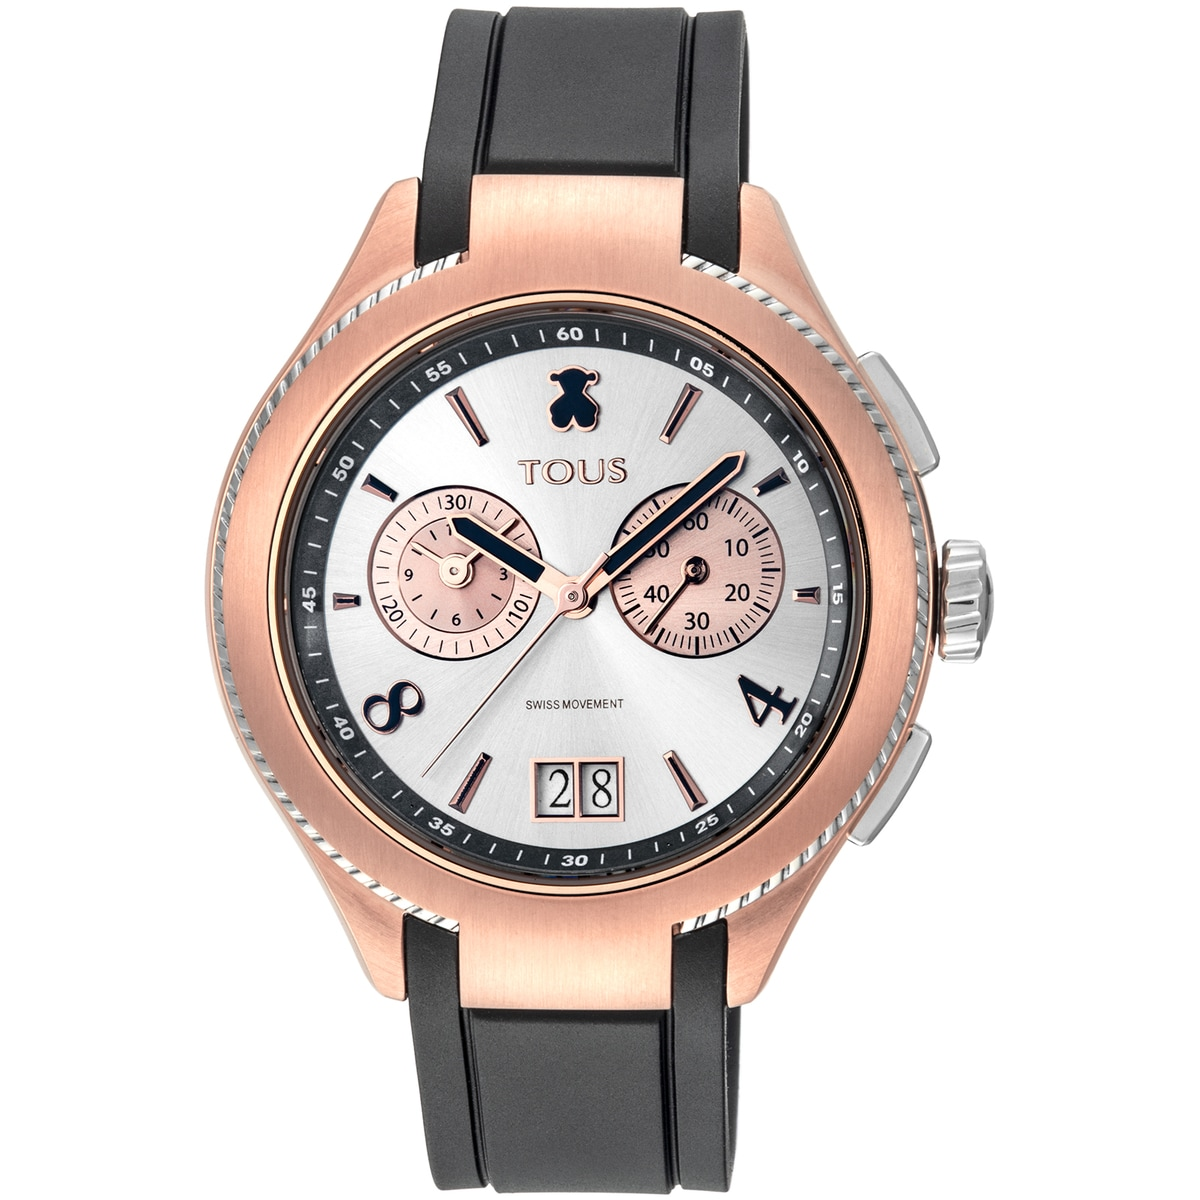 Two-tone Steel/Rose IP ST Watch with black leather strap